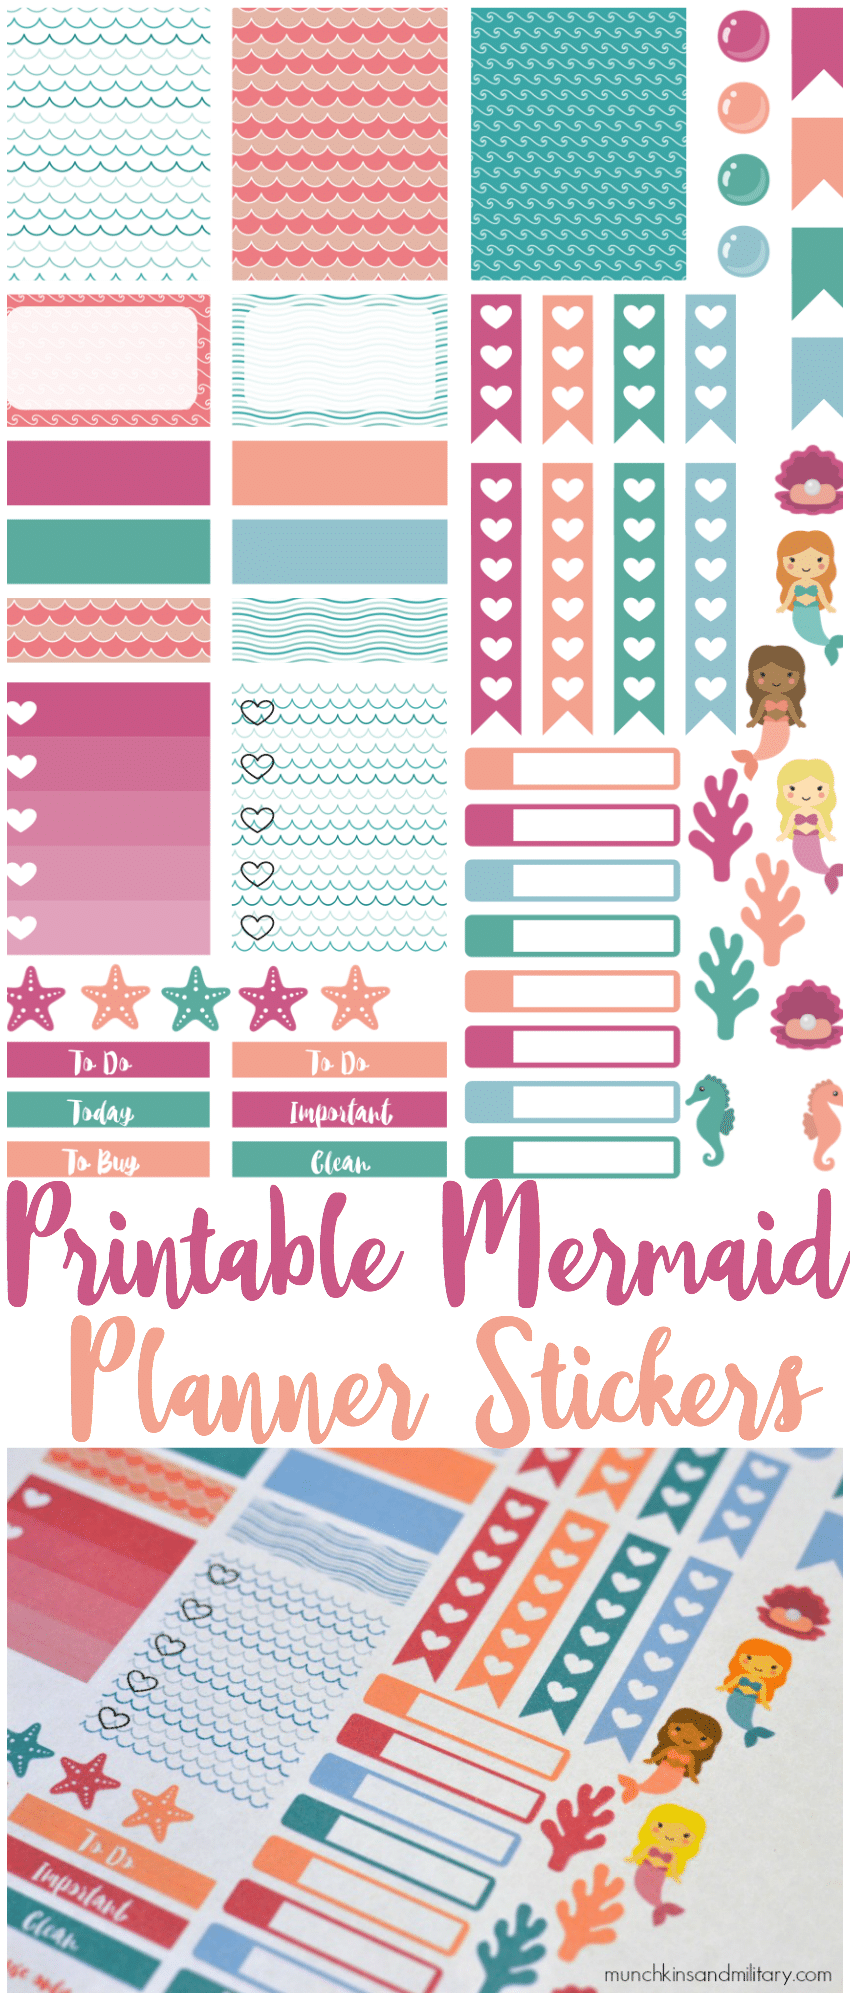 Calendar Planner Erin Condren : Printable mermaid stickers munchkins and the military